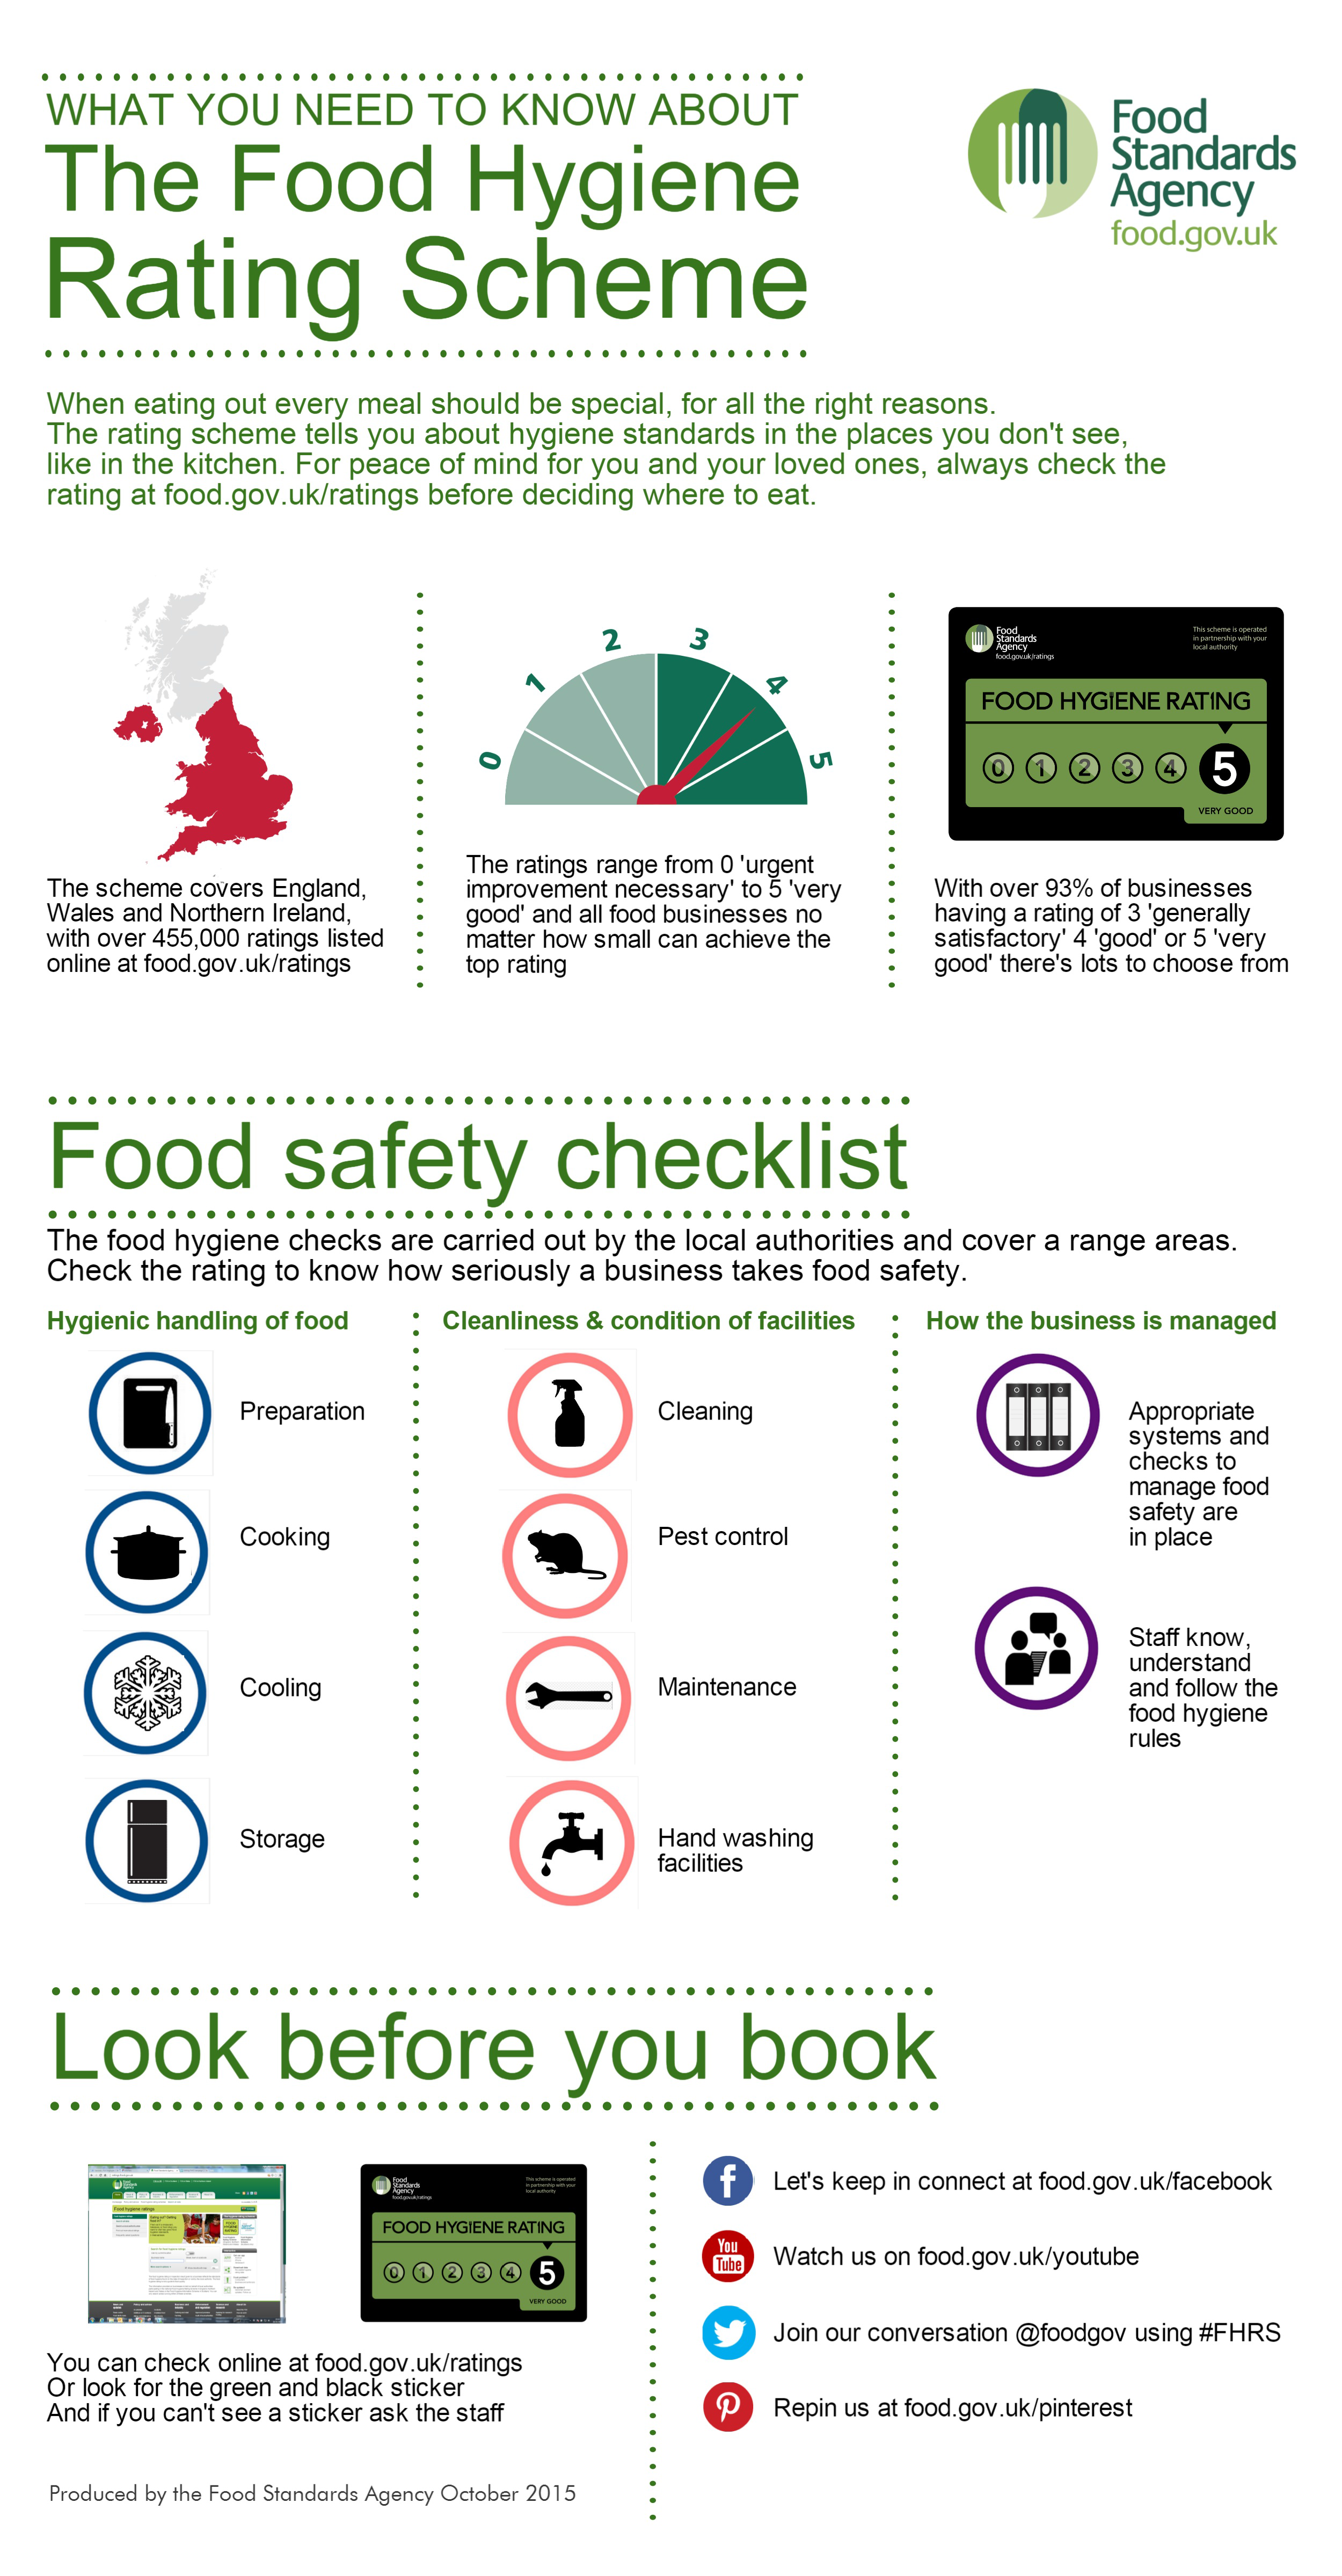 infographic showing what you need to know about the food hygiene infographic showing what you need to know about the food hygiene rating scheme